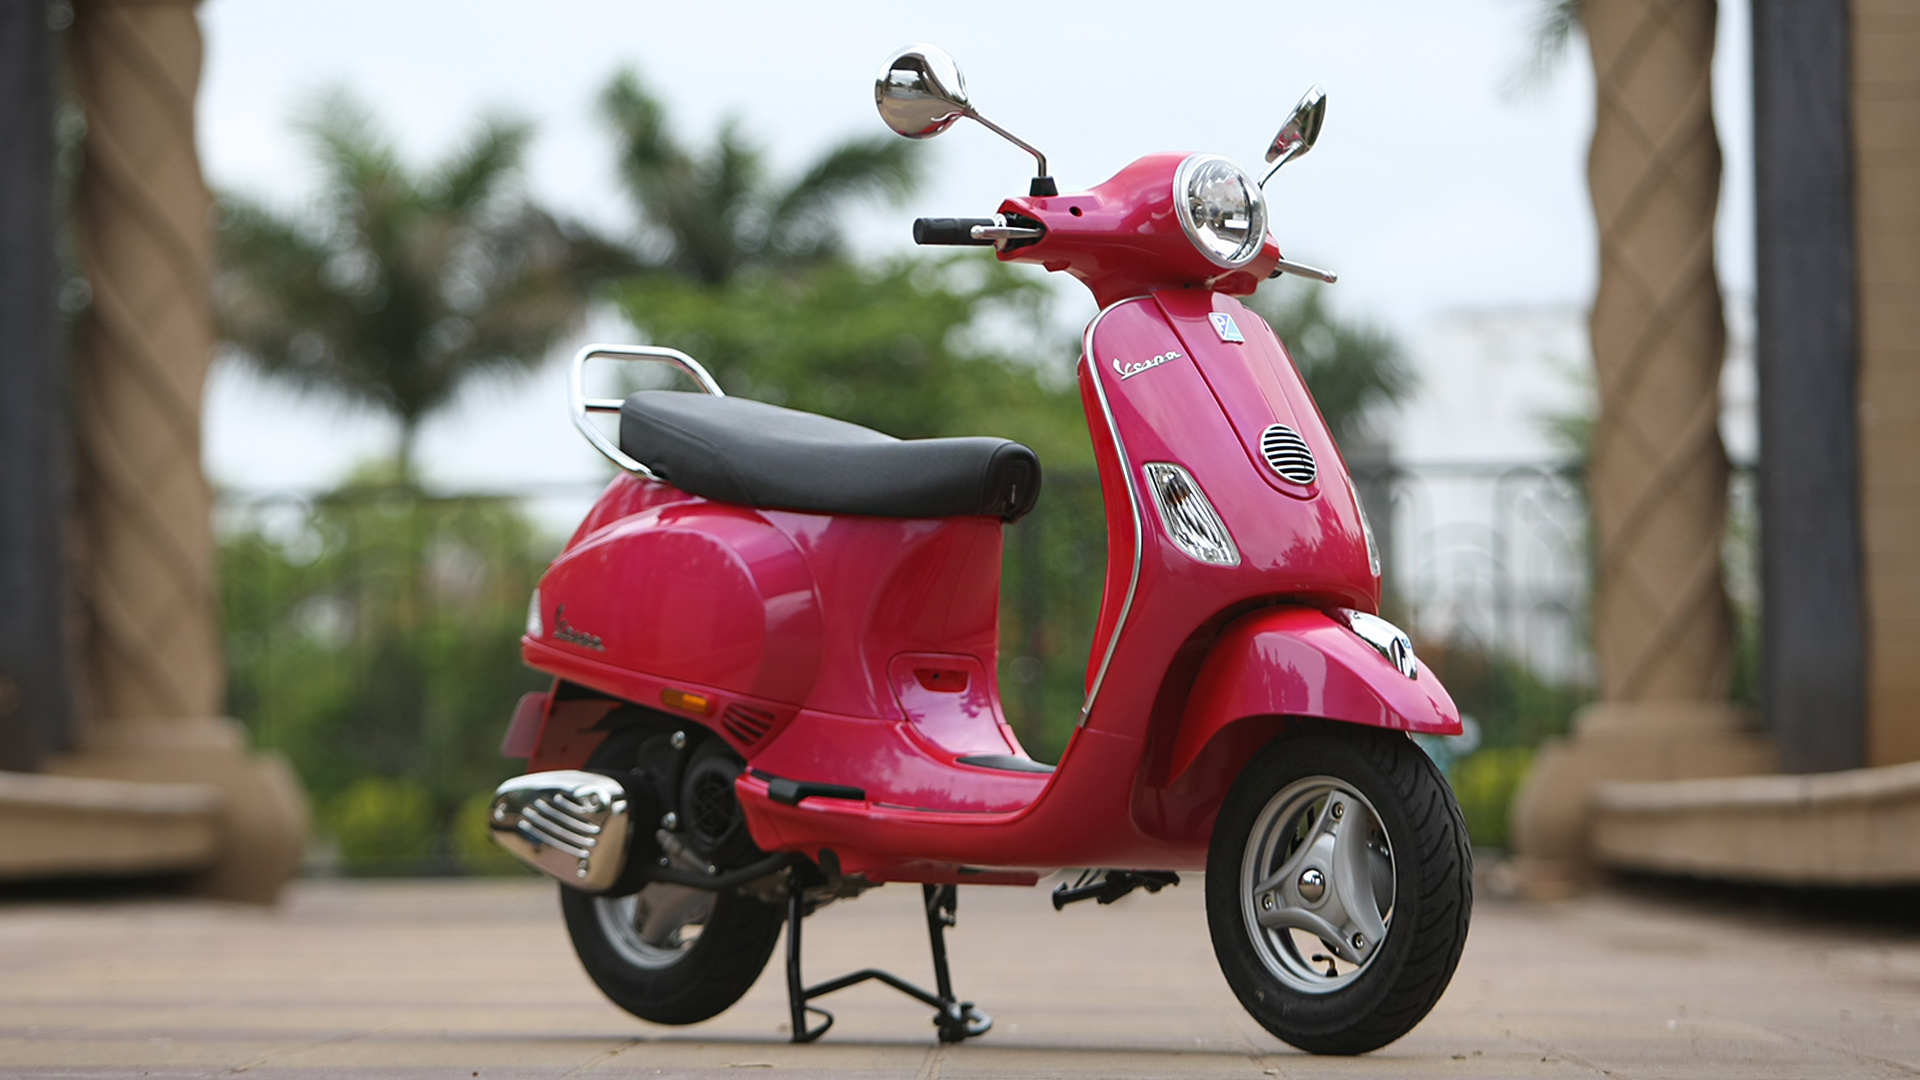 Vespa Vx 125 2013 Std Price Mileage Reviews